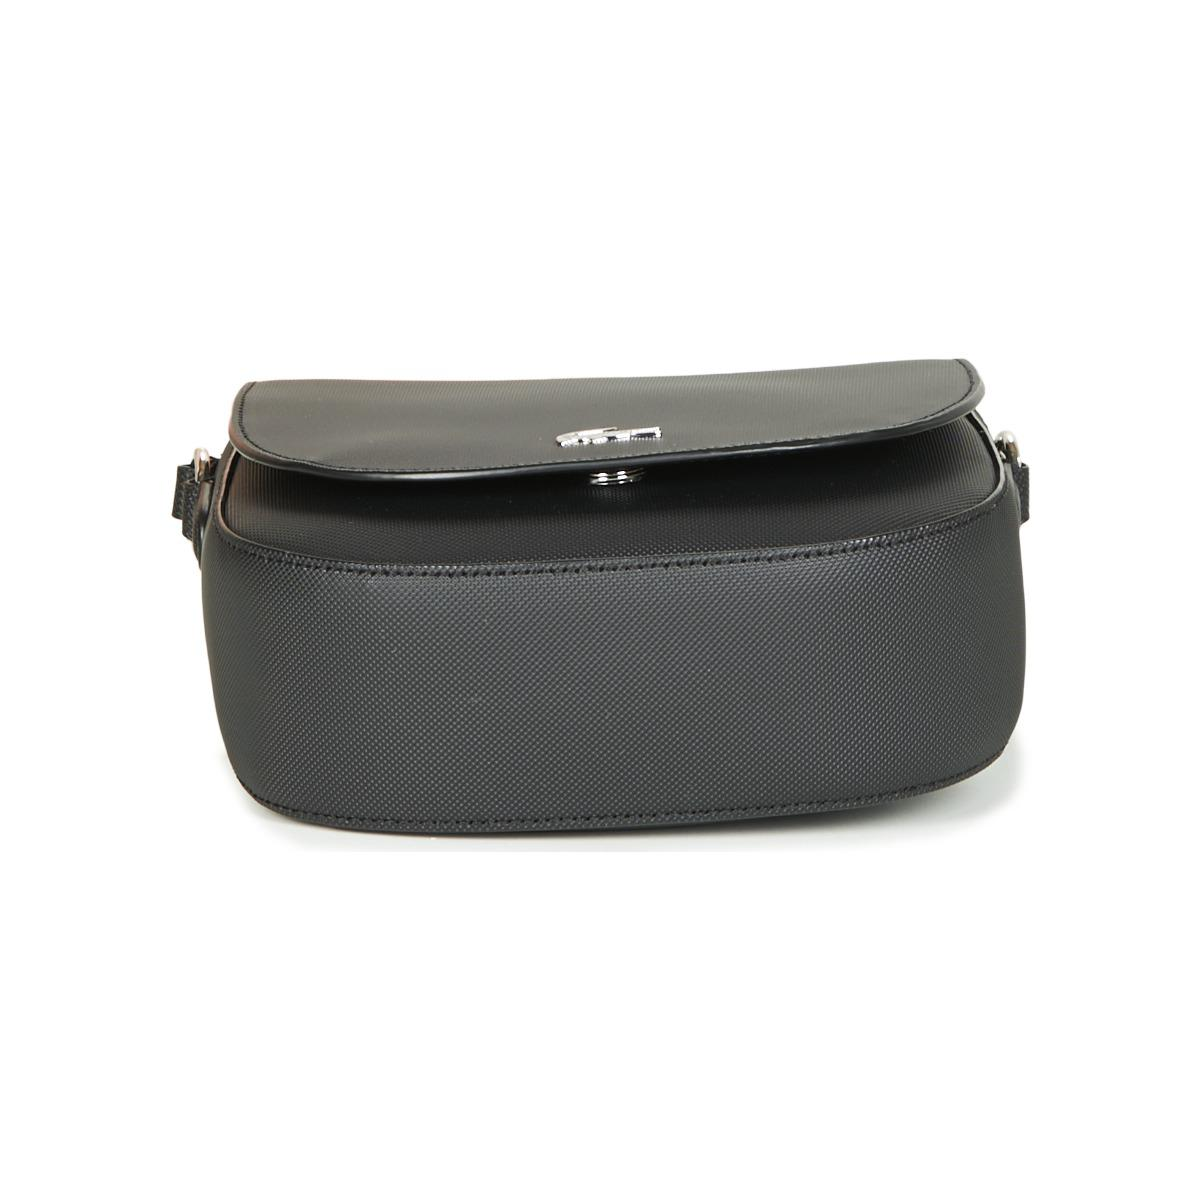 Lacoste Daily Classic Saddle Bag Coloris En Black fygIbvmY67